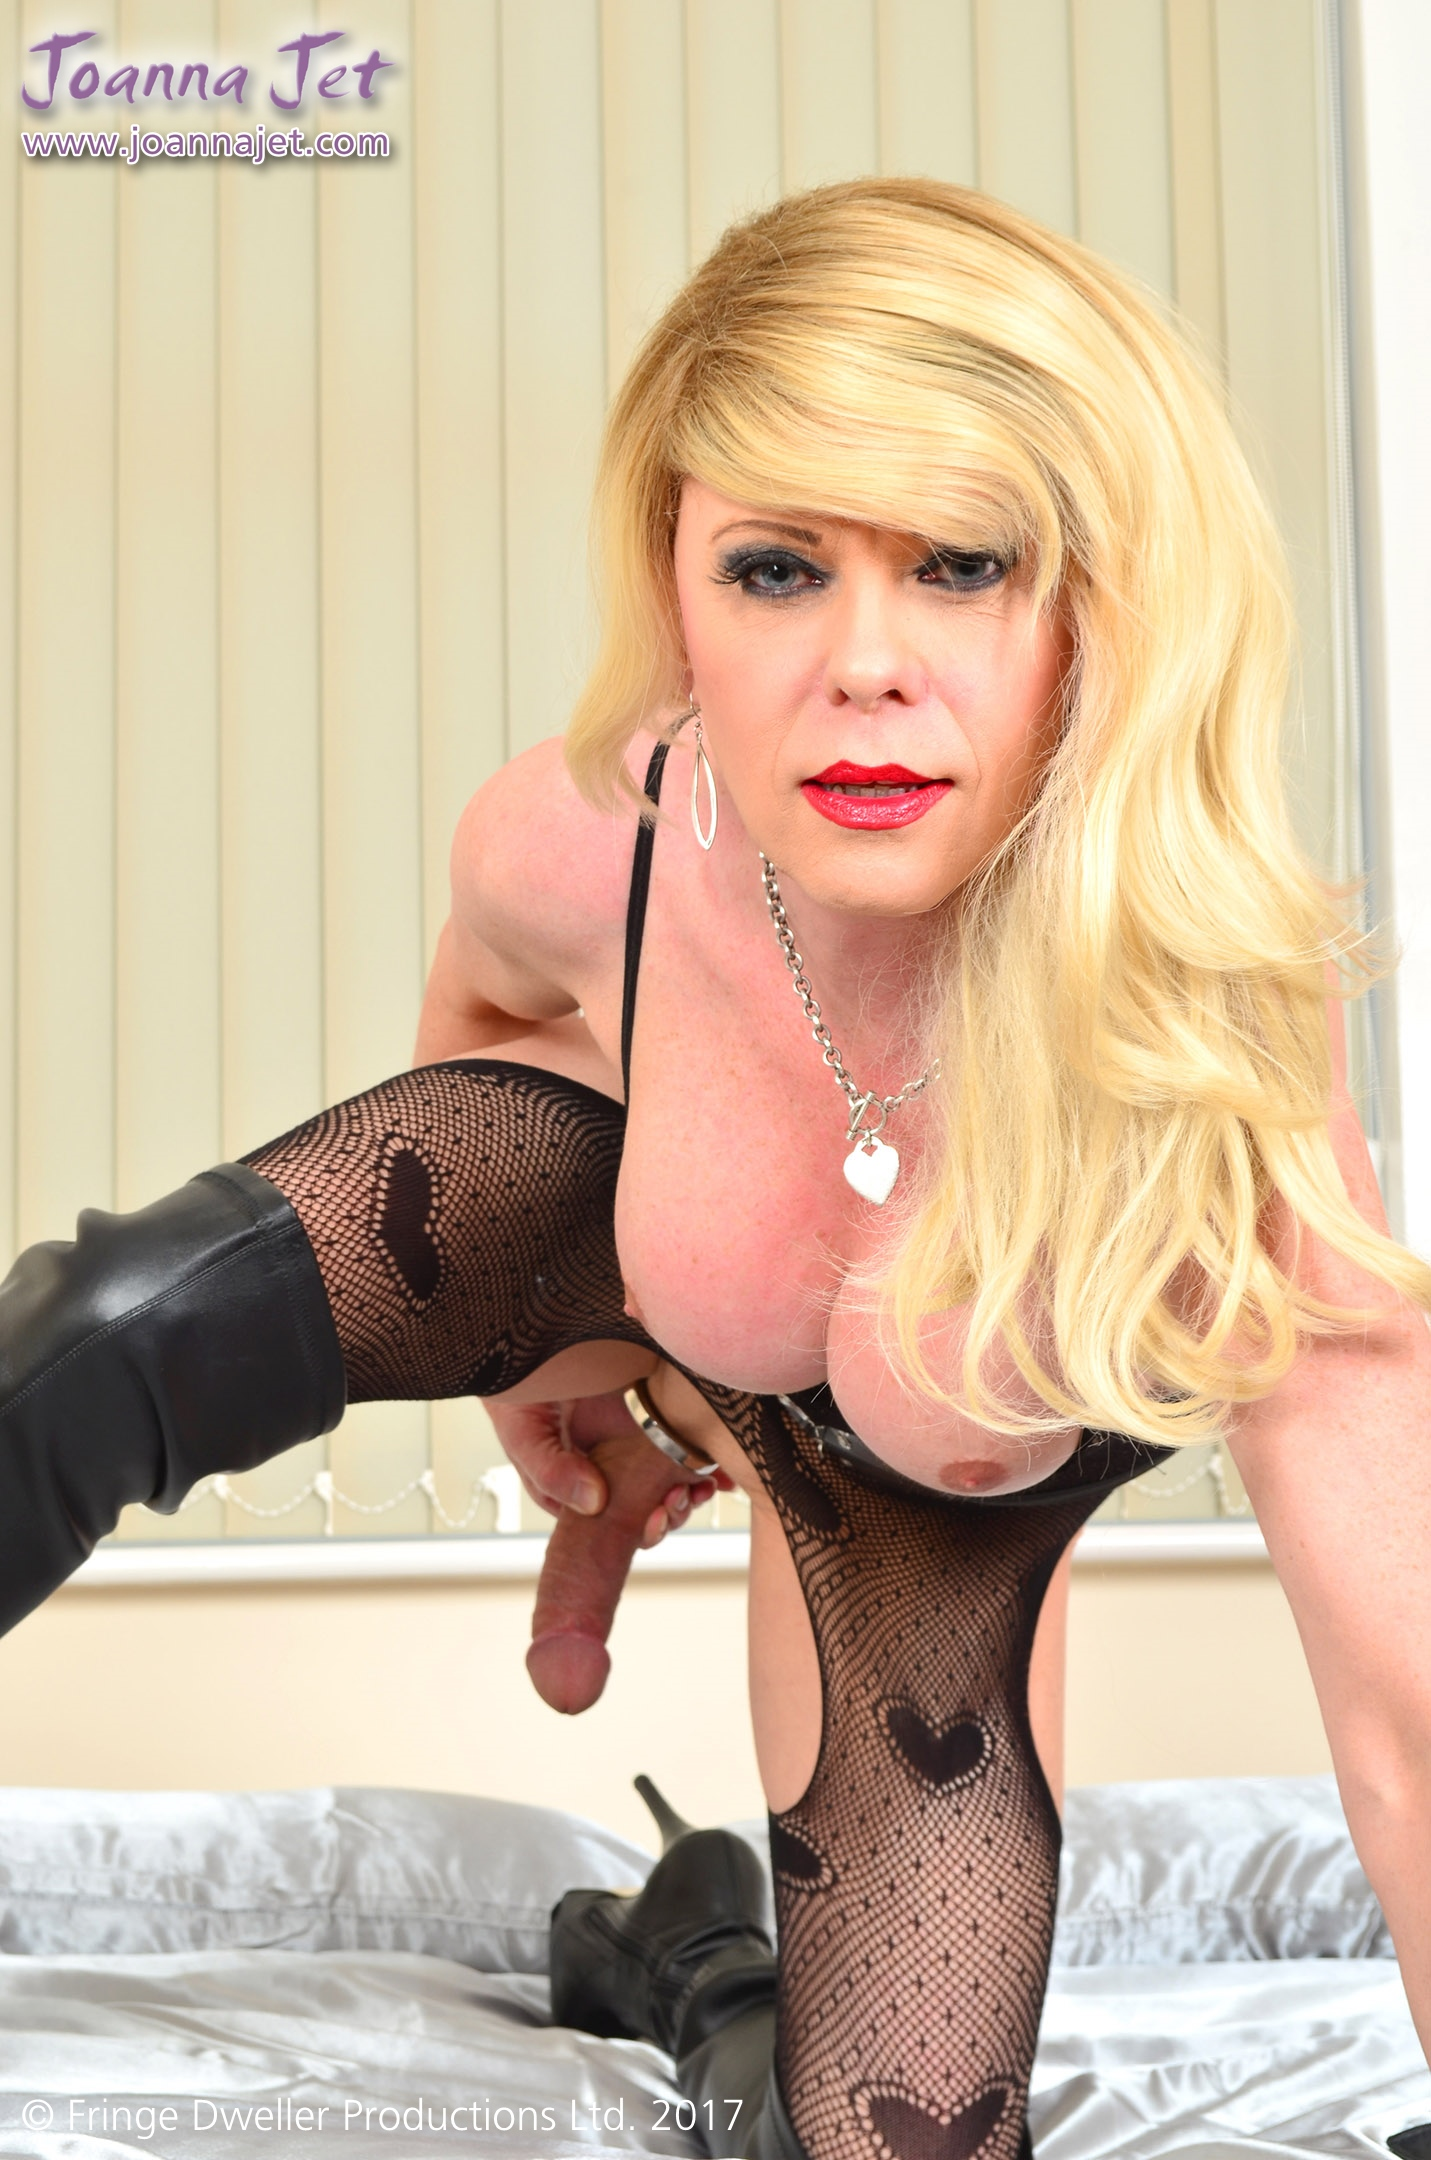 The Official Website Of Shemale Pornstar Joanna Jet  Home